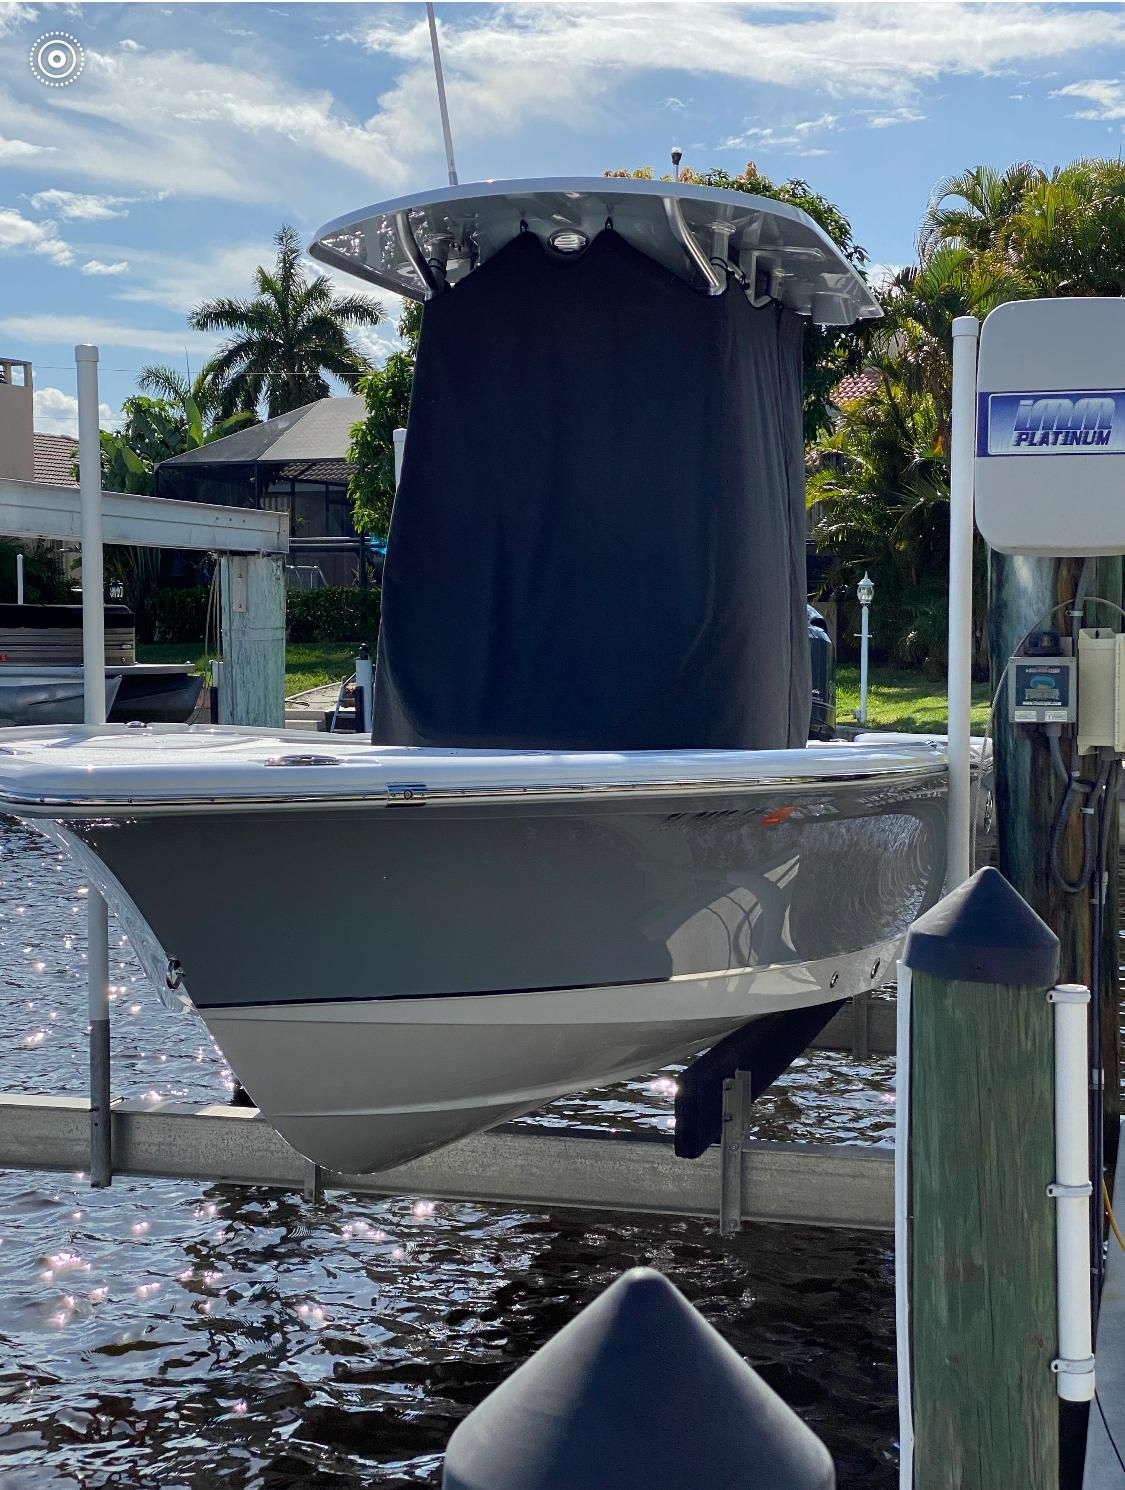 2020 Used Sea Hunt 22bxbr Center Console Fishing Boat For